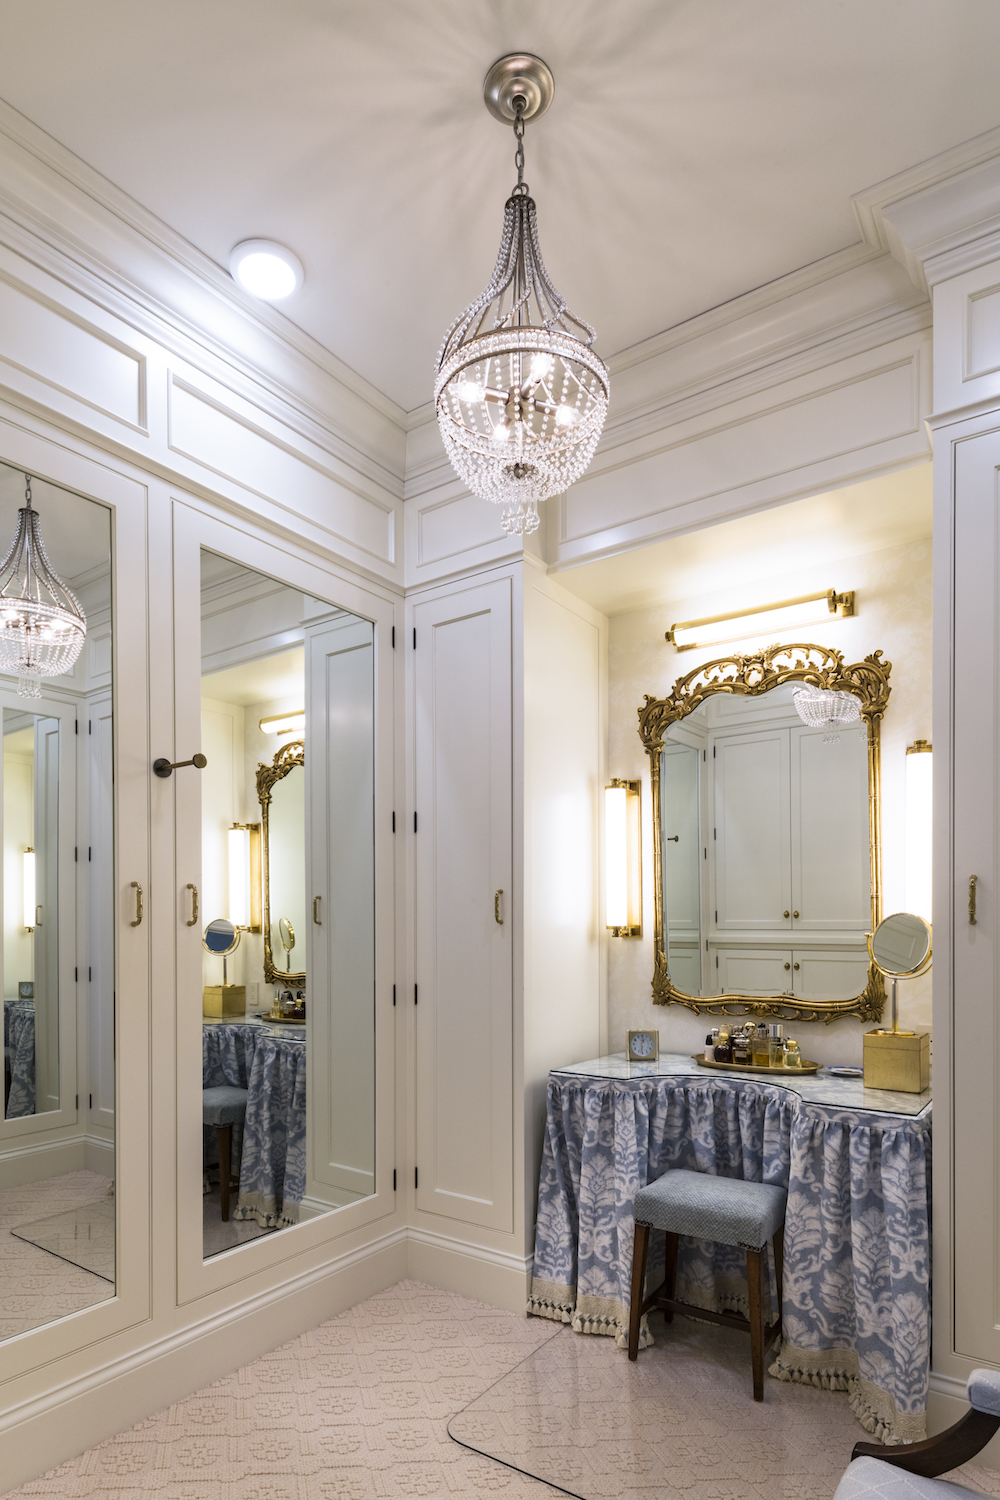 Architectural Interior, Residential Interior, Dressing Room